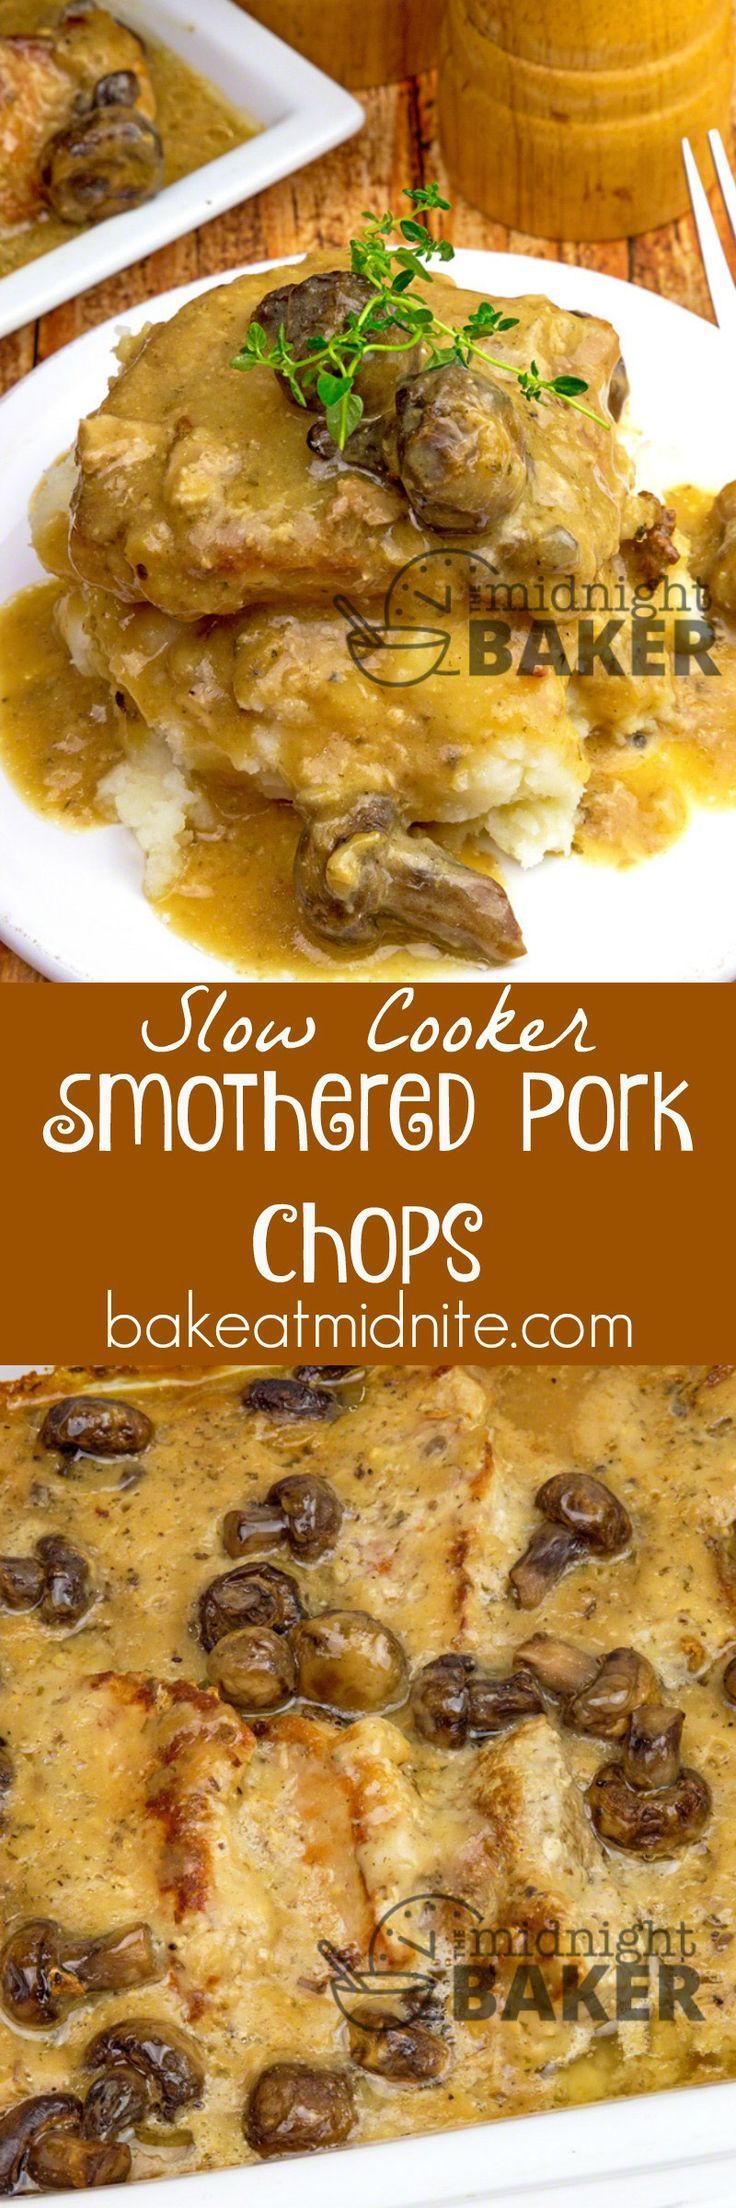 Pork Chops Smothered In An Awesome Gravy Easy To Make In The Slow Cooker